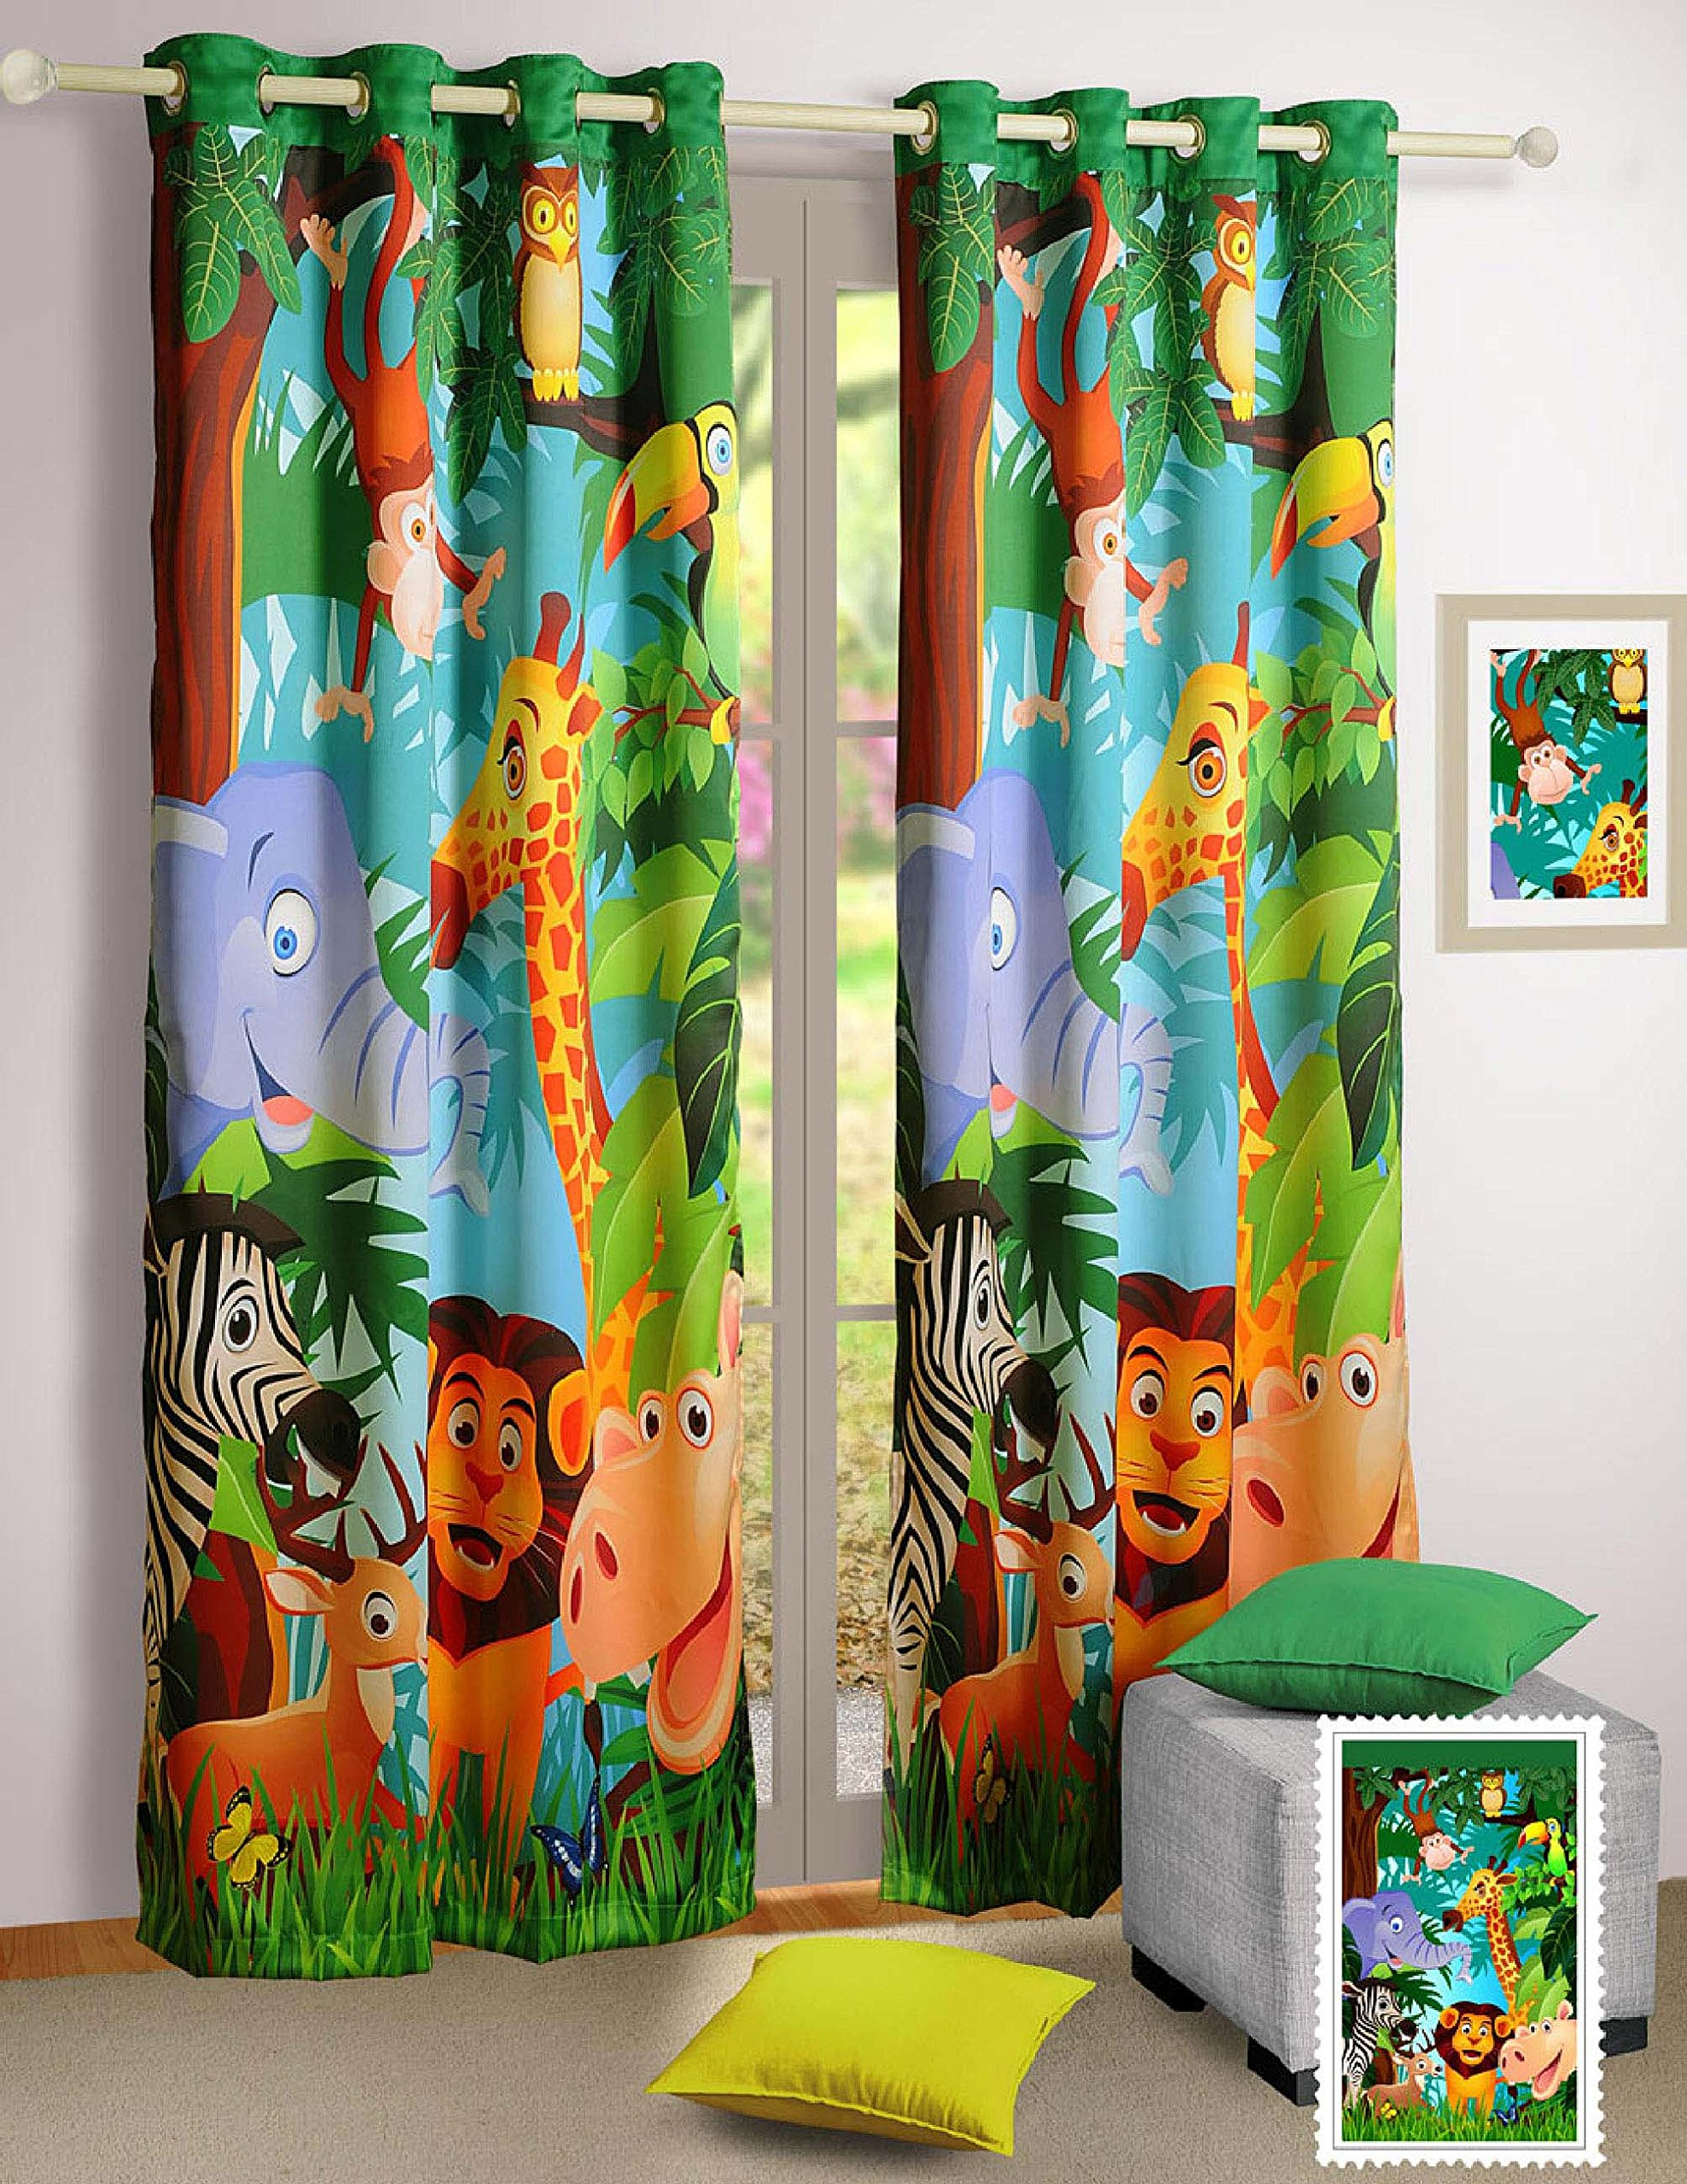 Blackout Poly Satin Fabric Jungle Animals Door Curtains - Set of 2 Curtain Panels for a Baby Nursery or Toddler or Kids Bedroom - 48'' x 84'' panels